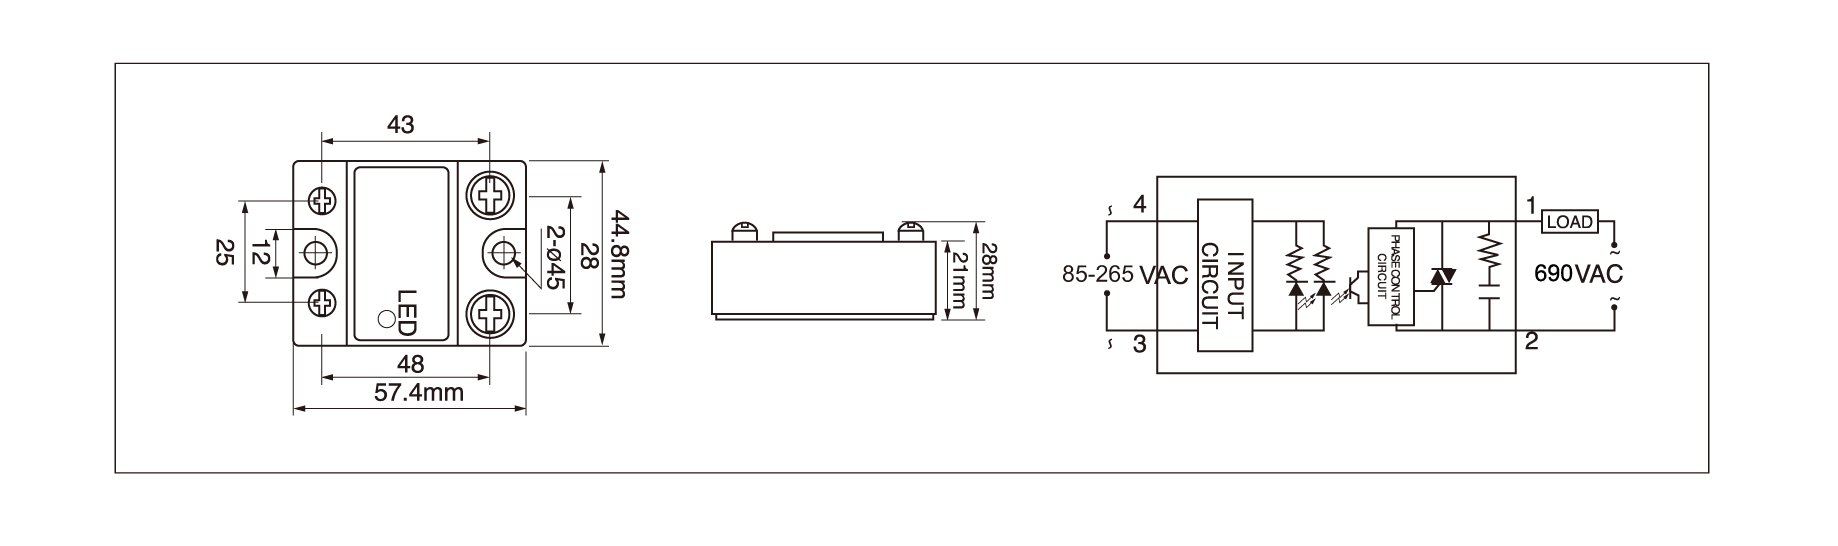 Dimension and circuit diagram -  MGR 1A69 series